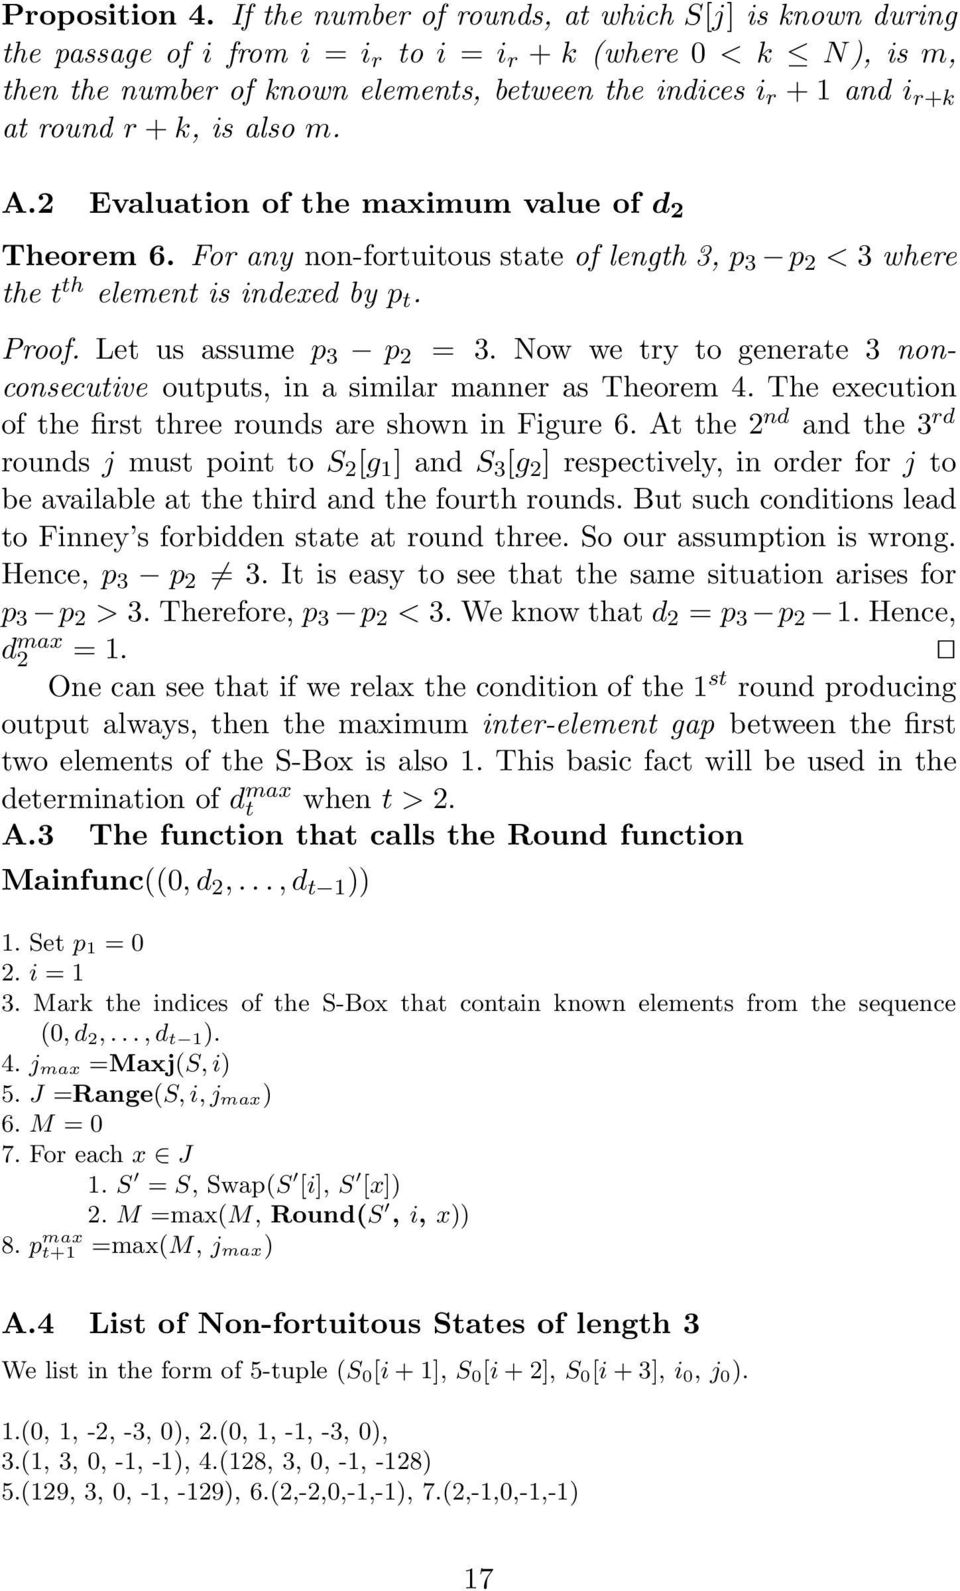 round r + k, is also m. A.2 Evaluation of the maximum value of d 2 Theorem 6. For any non-fortuitous state of length 3, p 3 p 2 < 3 where the t th element is indexed by p t. Proof.